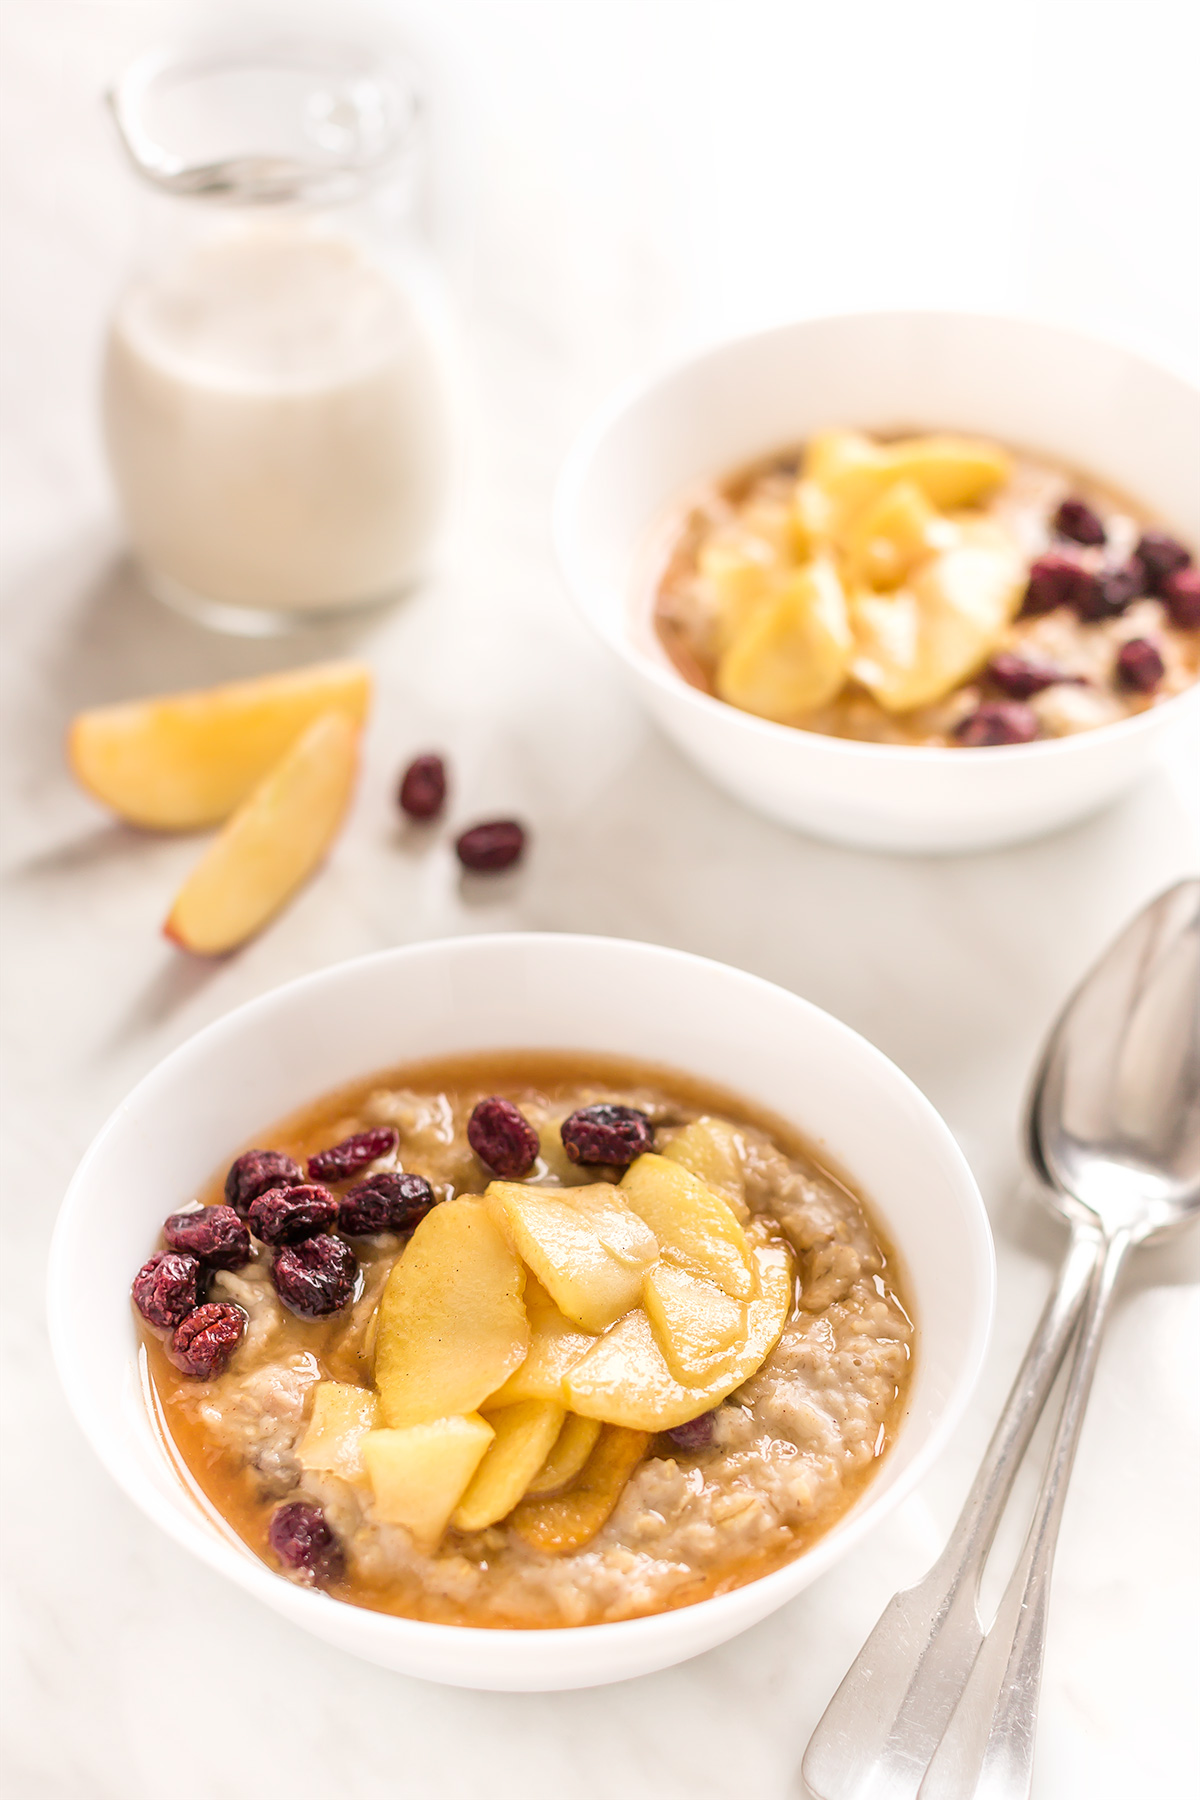 porridge di avena alle mele caramellate e cannella - vegan caramelized apple oatmeal with cinnamon